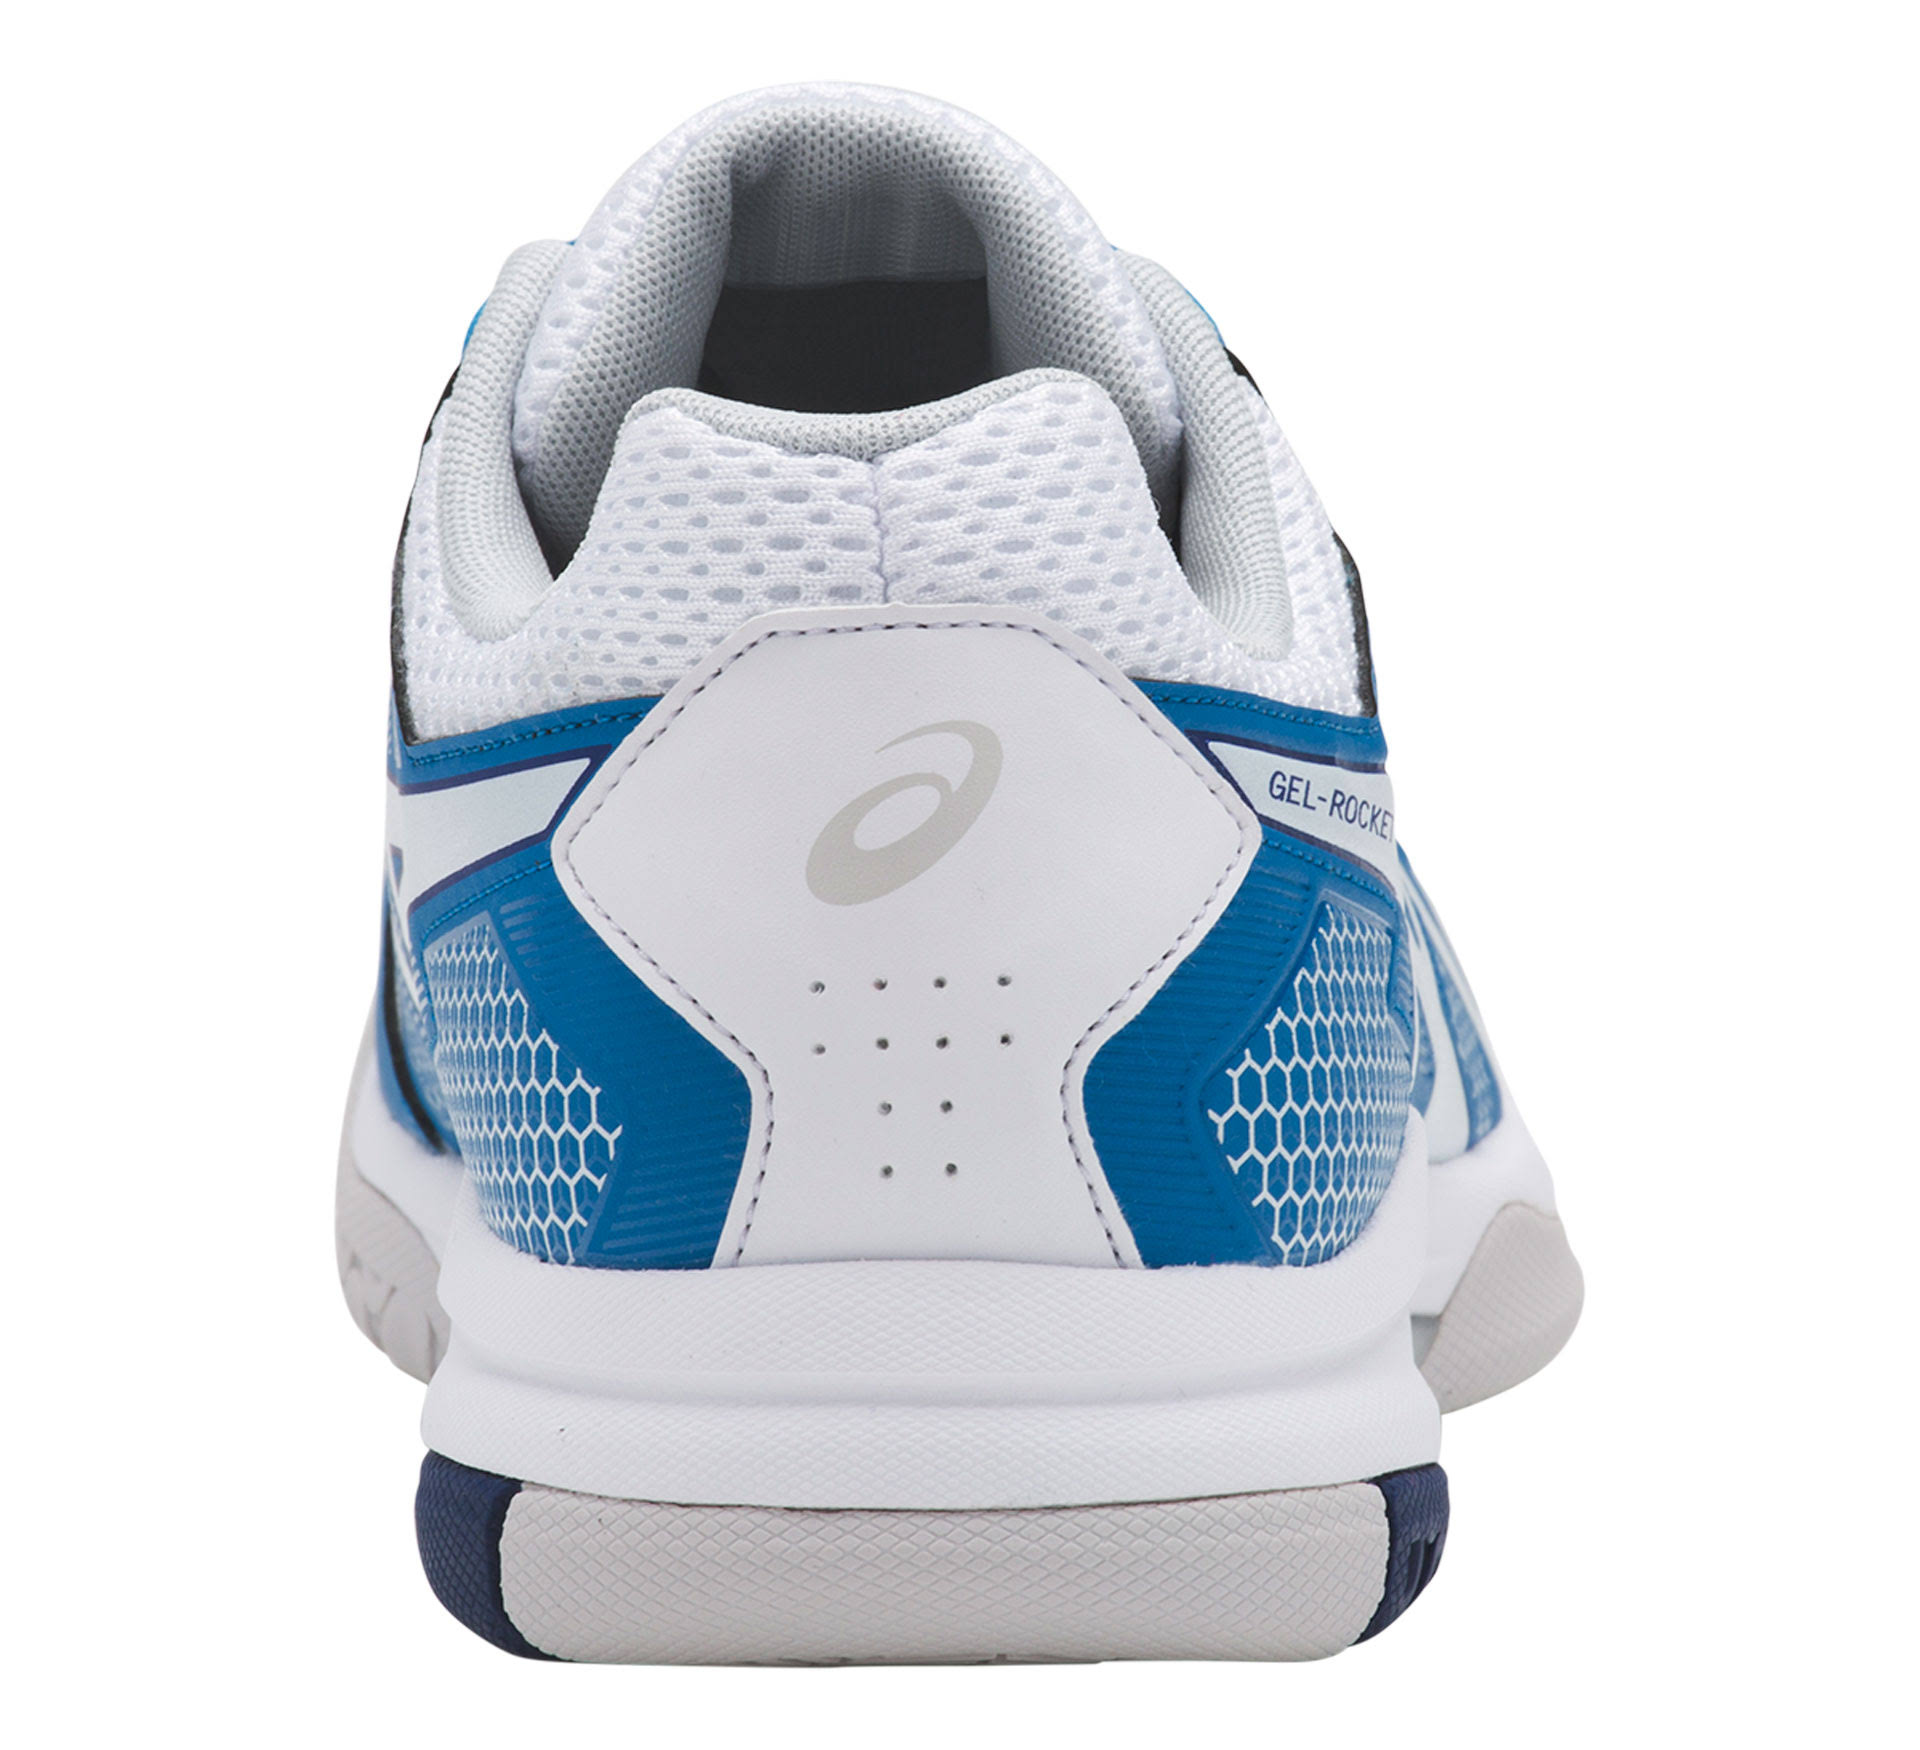 8 Bianco Shoes Blu AsicsGel rocket SqUzpGMLV